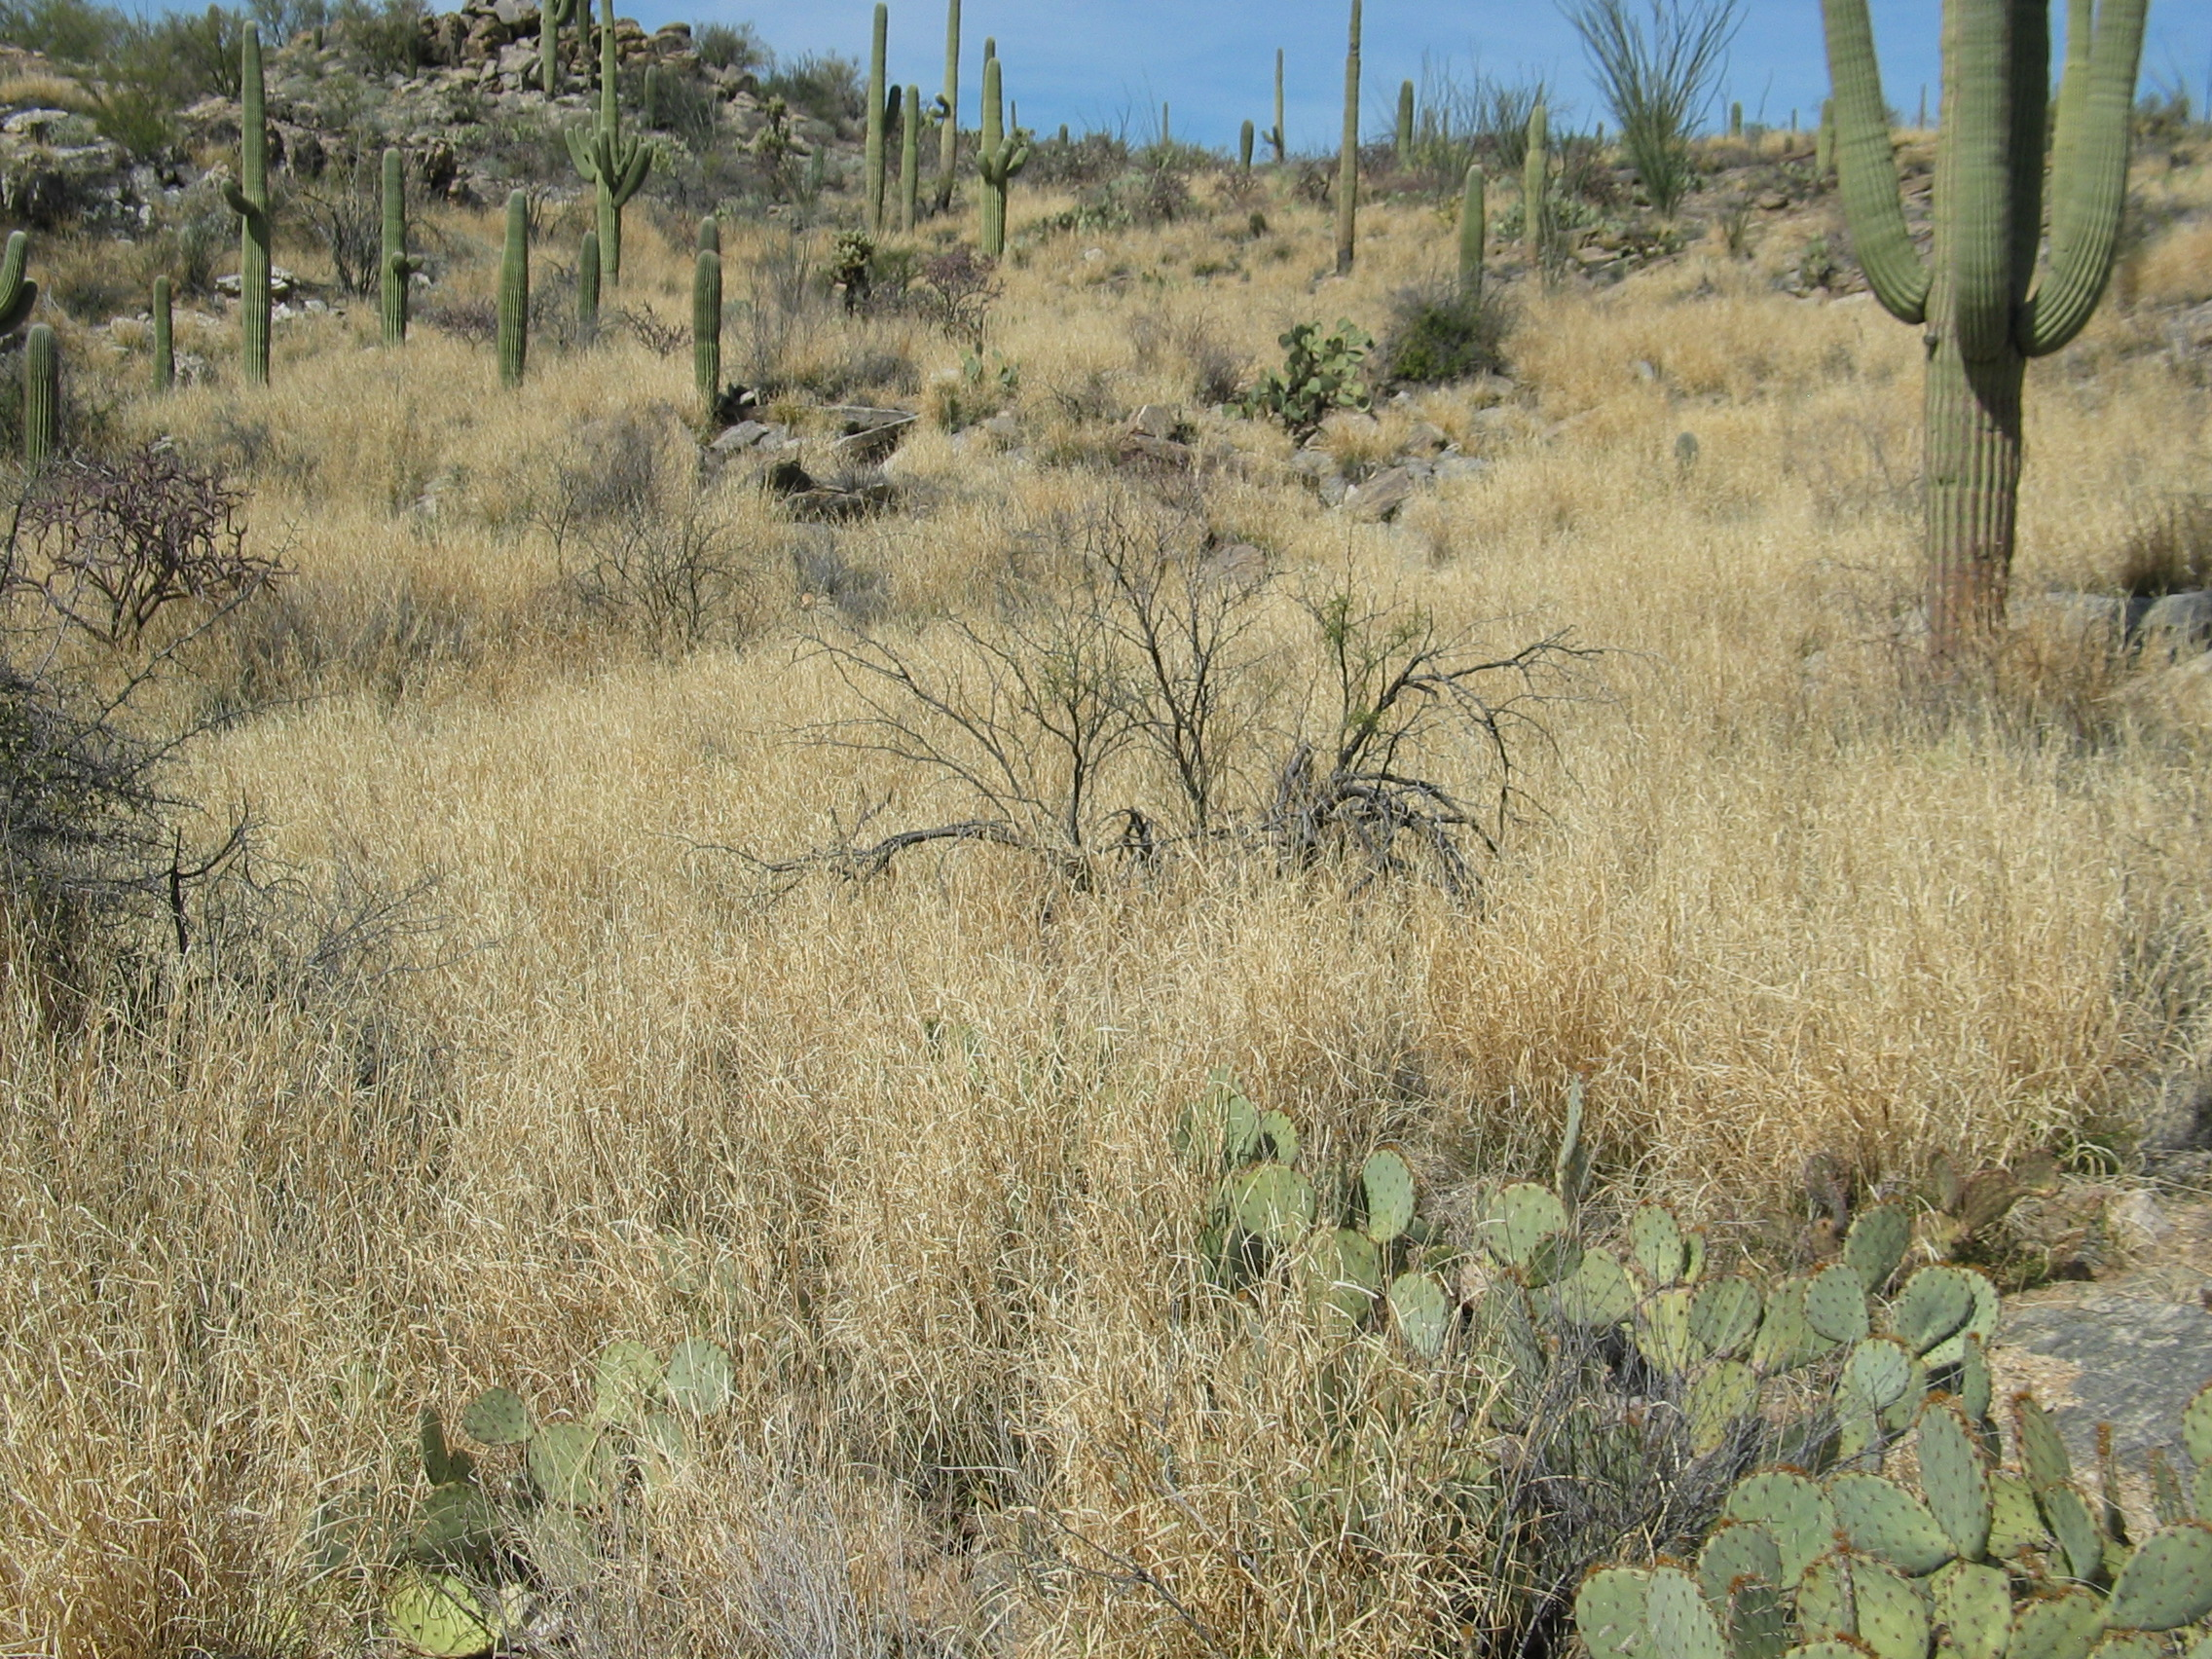 Dense Buffelgrass in Saguaro National Park, photo from the National Park Service